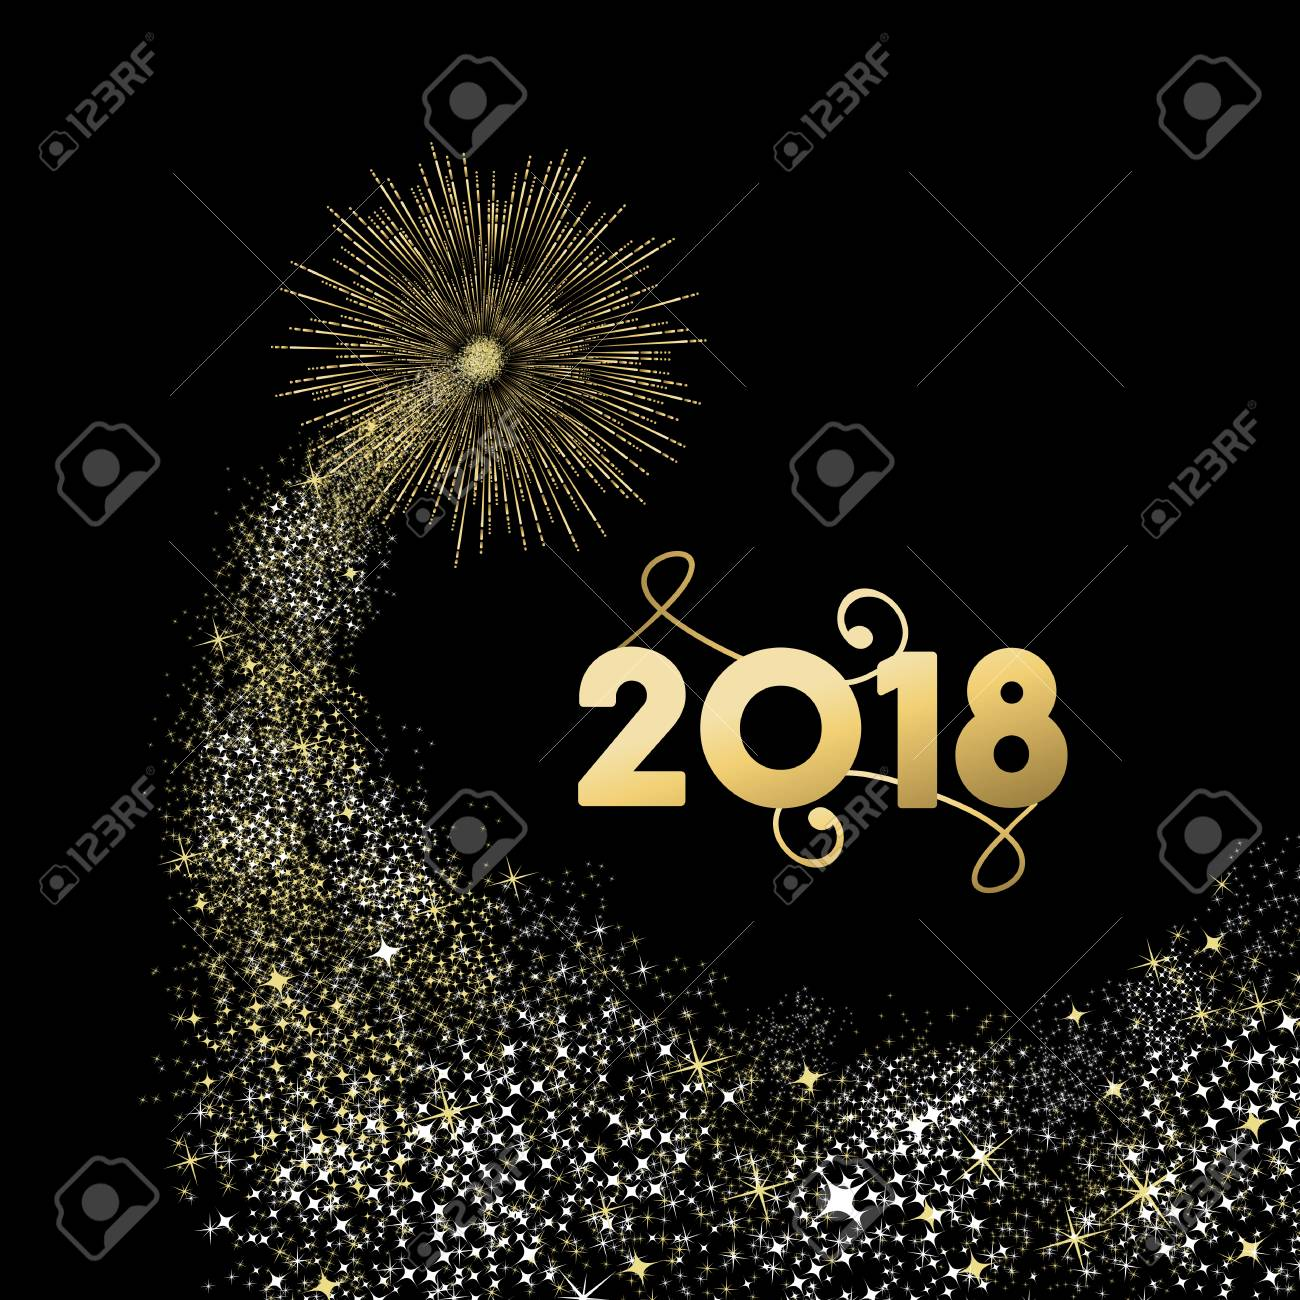 Happy New Year 2018 gold number typography greeting card with fireworks explosion in night sky. - 91582686